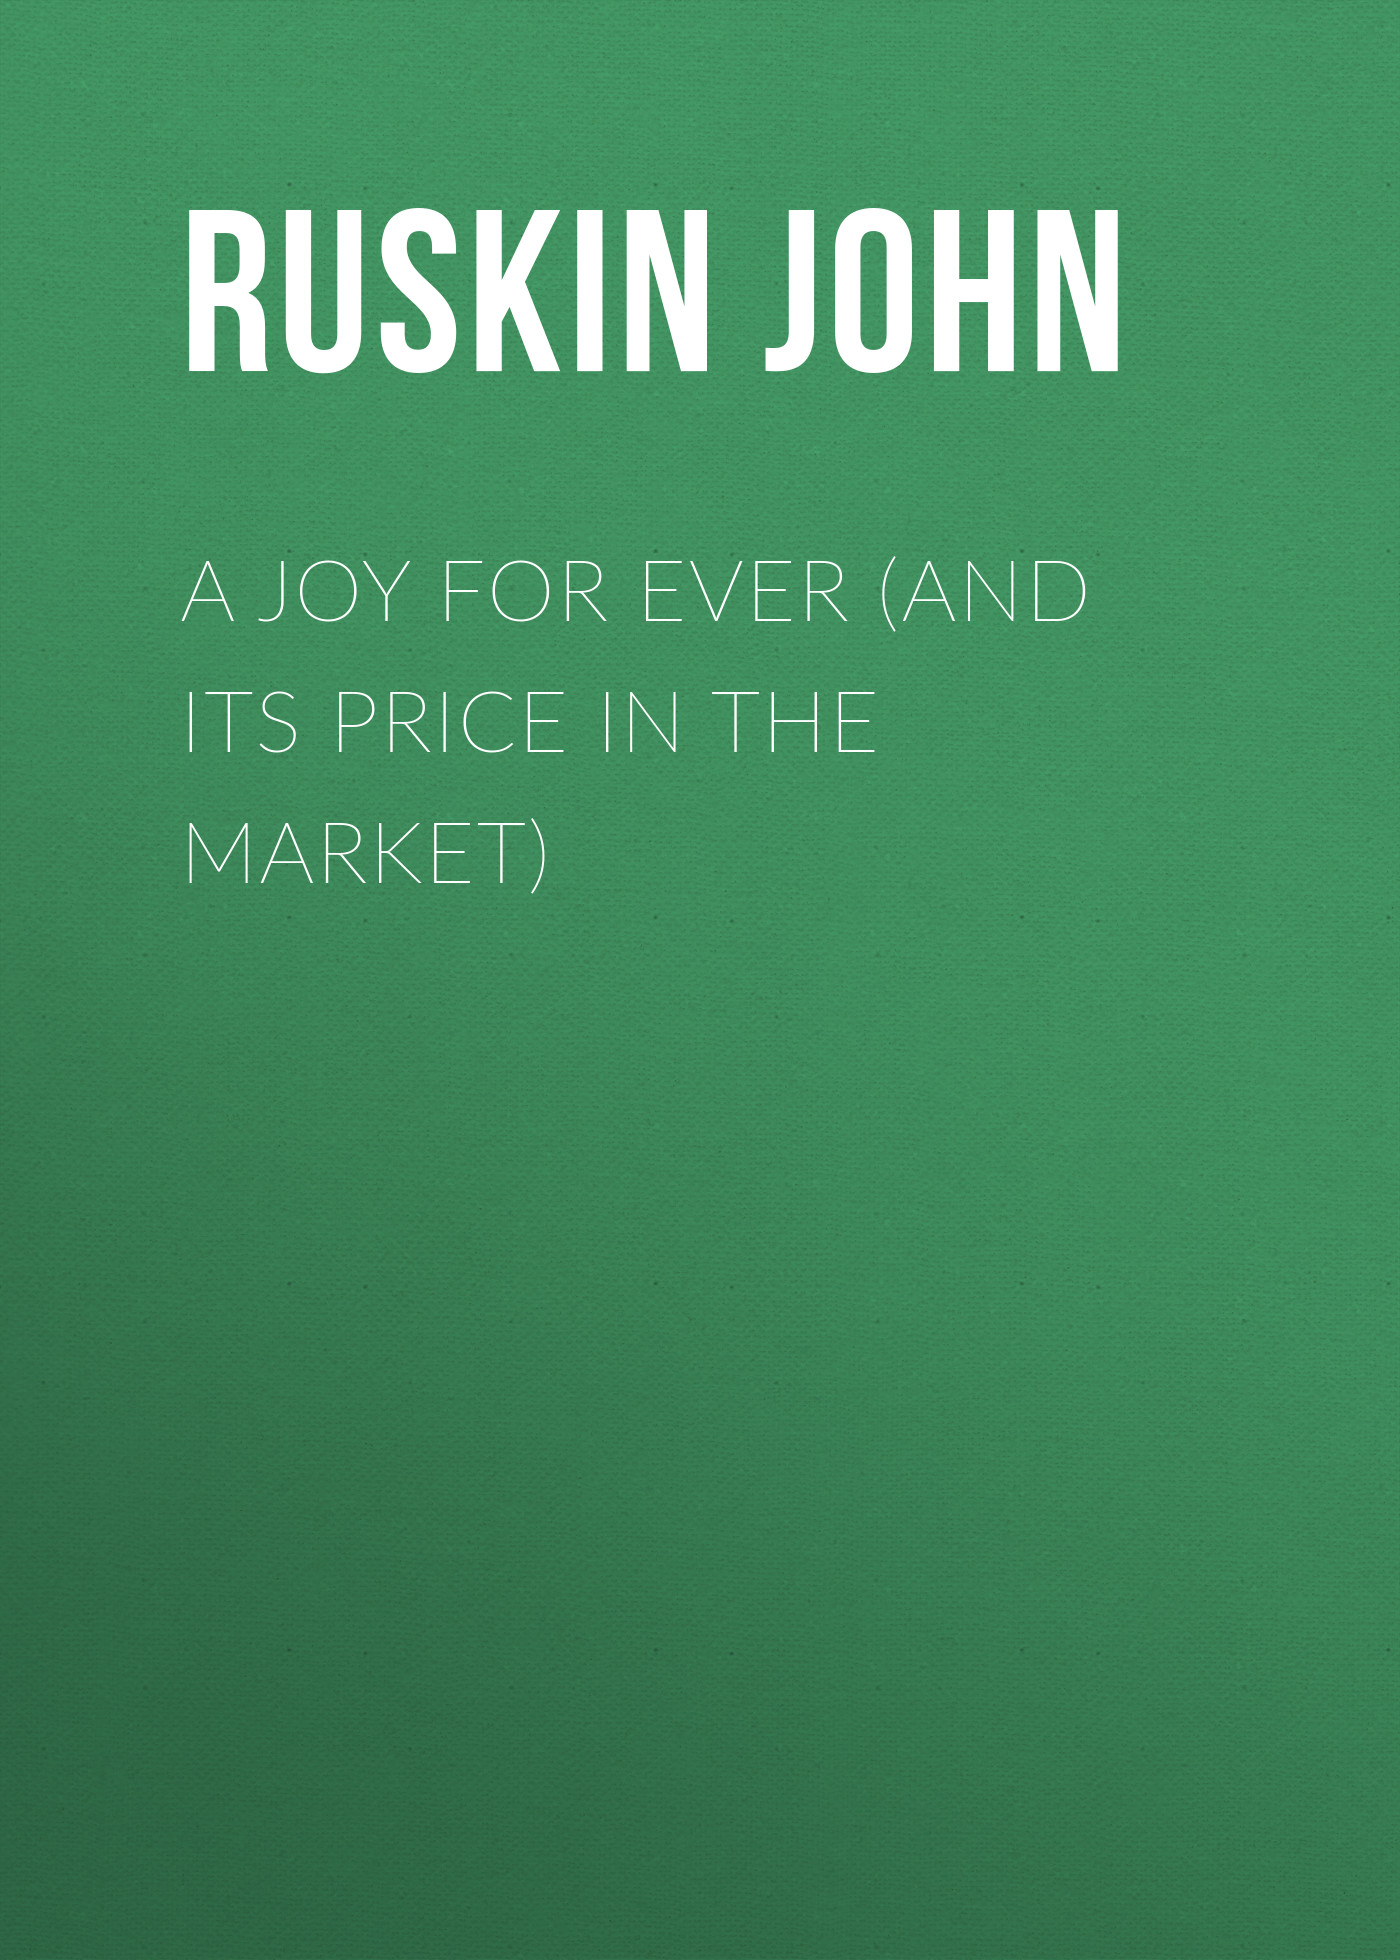 купить Ruskin John A Joy For Ever (and Its Price in the Market) по цене 0 рублей